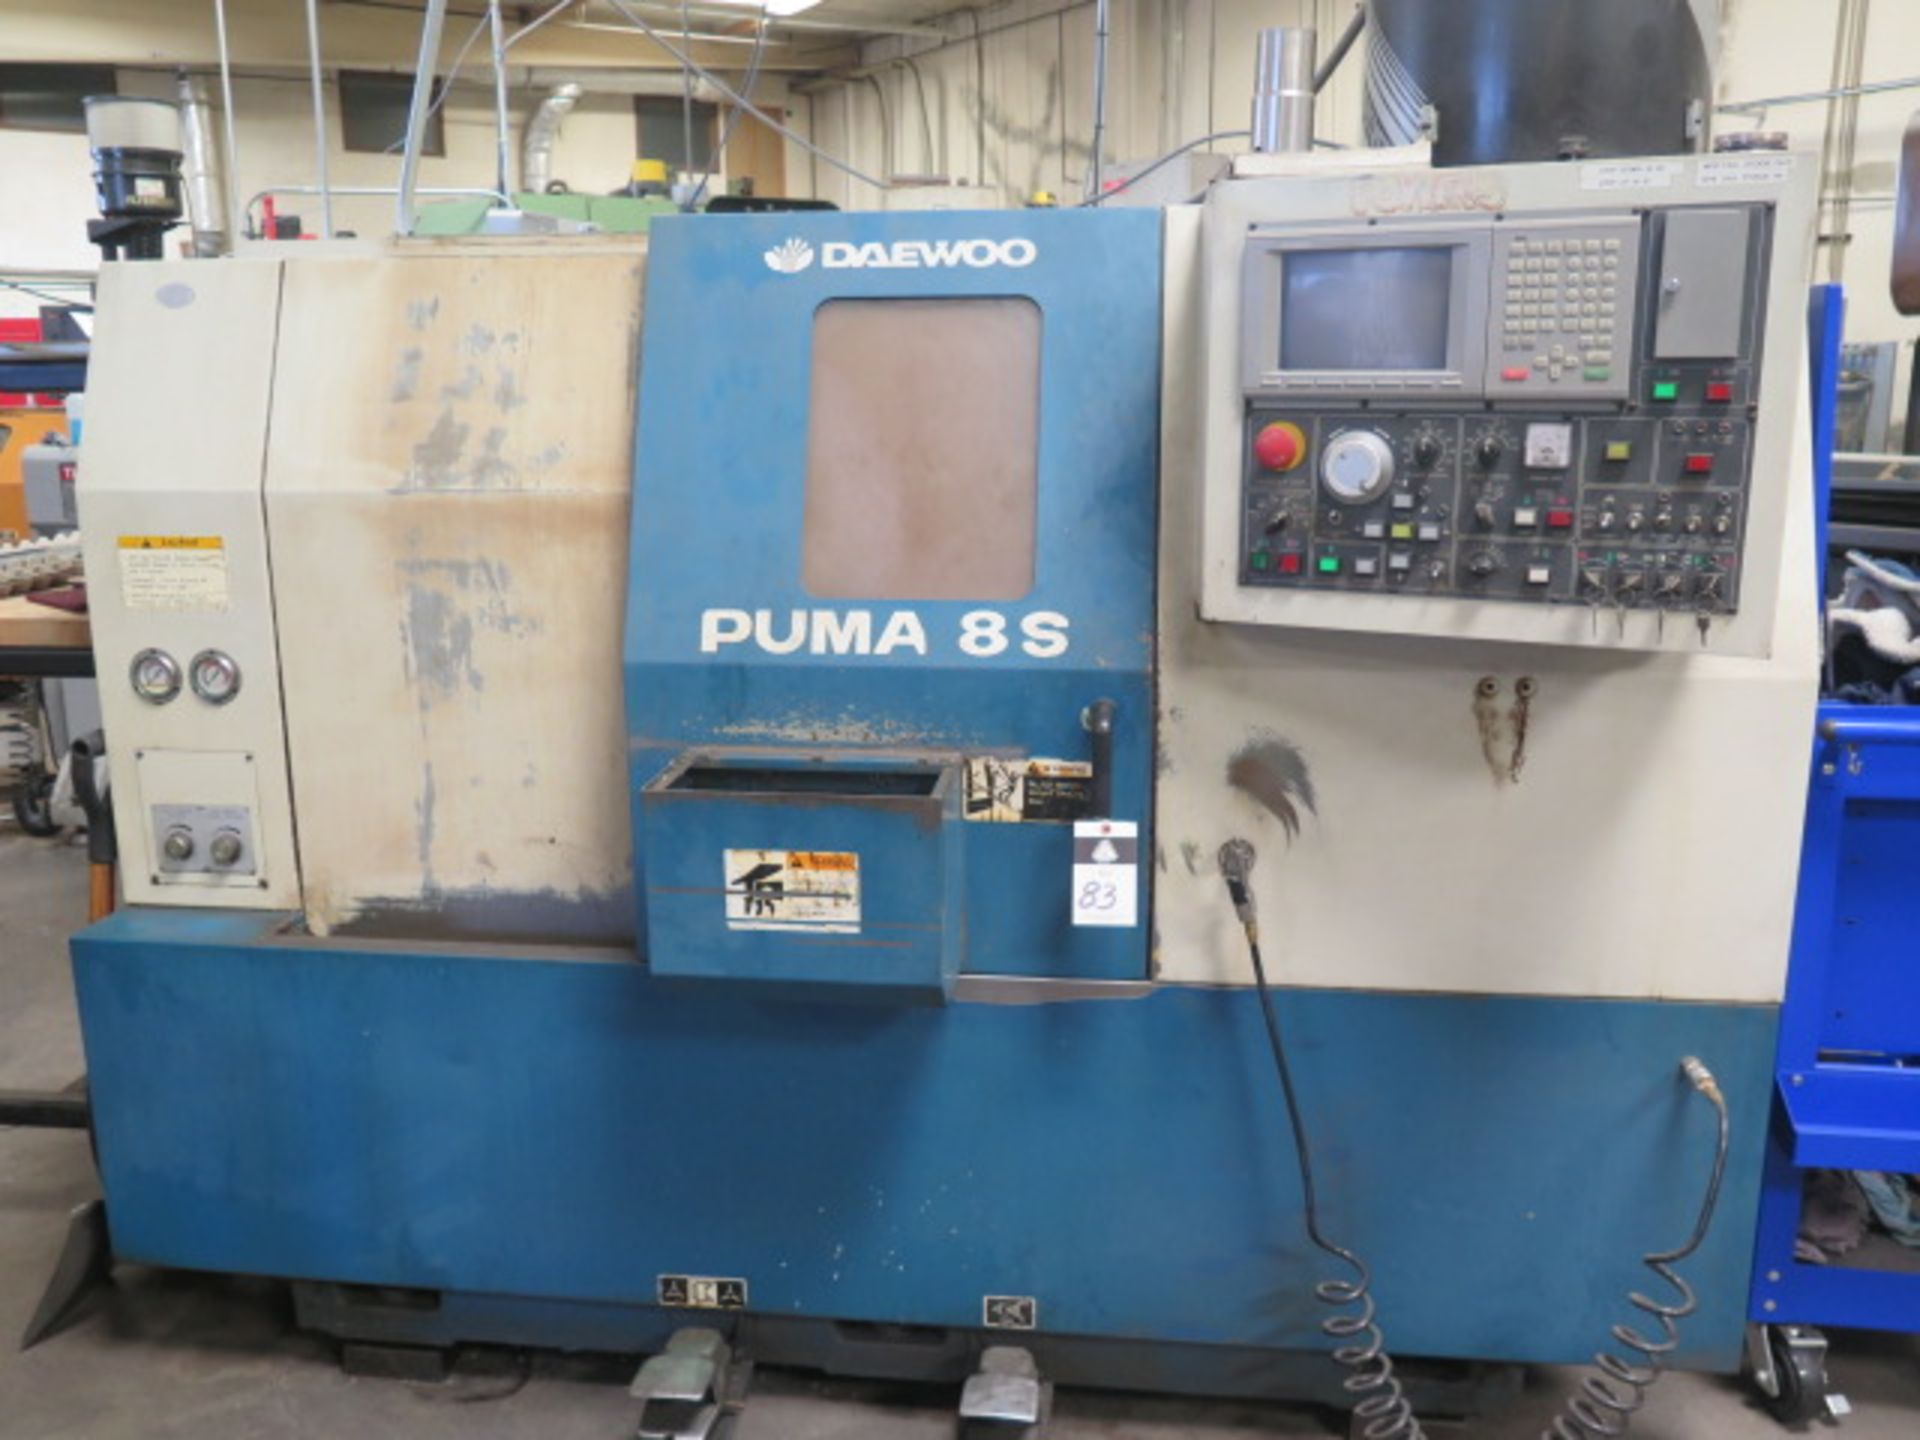 1996 Daewoo PUMA 8S CNC Turning Center s/n PM8S0500 w/ Mits Controls, Tool Presetter, SOLD AS IS